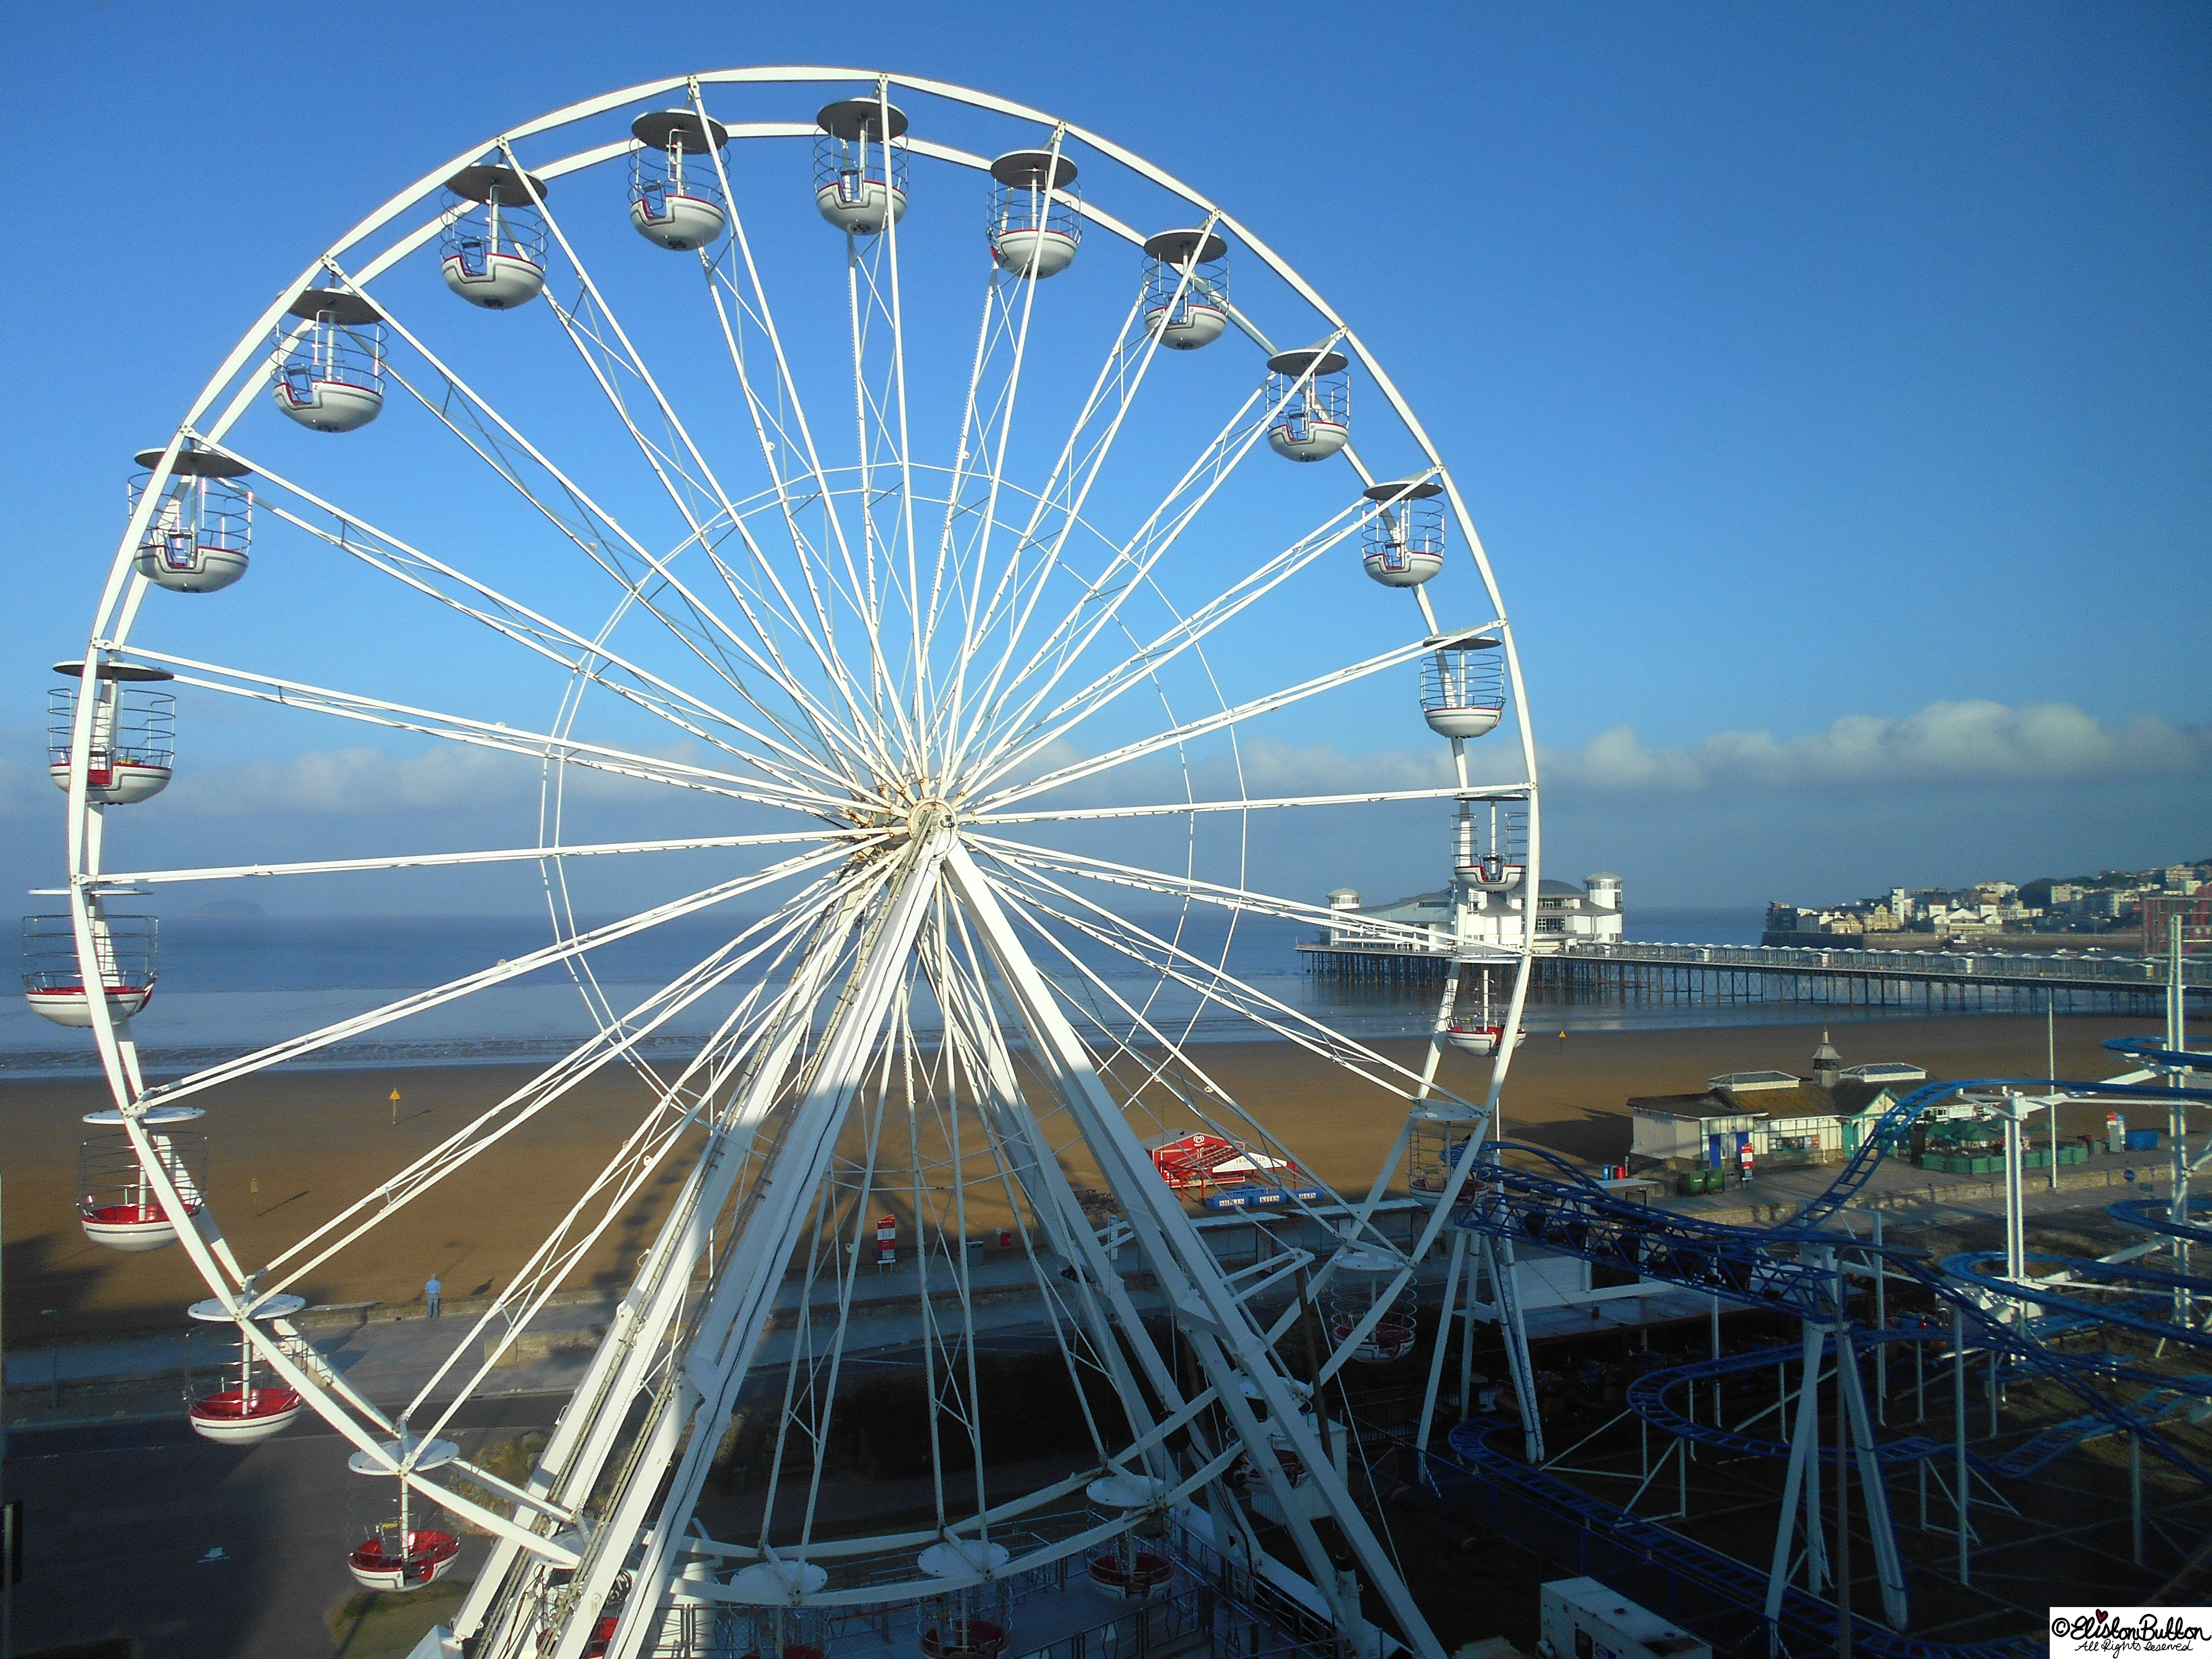 Weston-Super-Mare Ferris Wheel at Day - The Great British Seaside (and an Eliston Button Autumn Sale) at www.elistonbutton.com - Eliston Button - That Crafty Kid – Art, Design, Craft & Adventure.